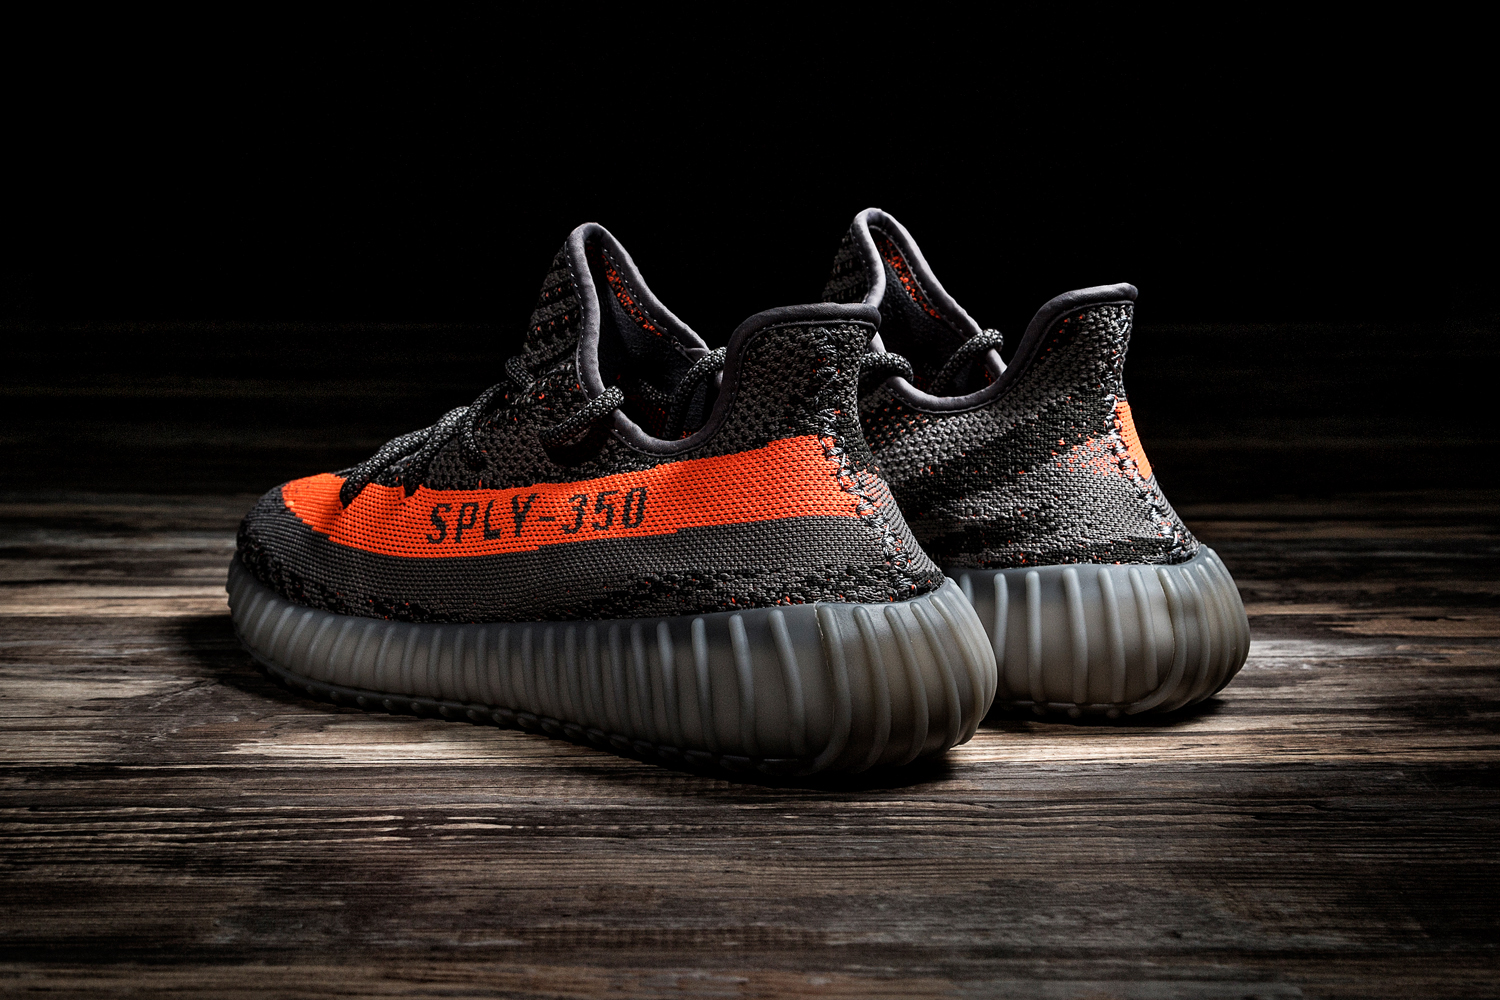 Release Date: adidas Yeezy Boost 350 V2 Black Copper